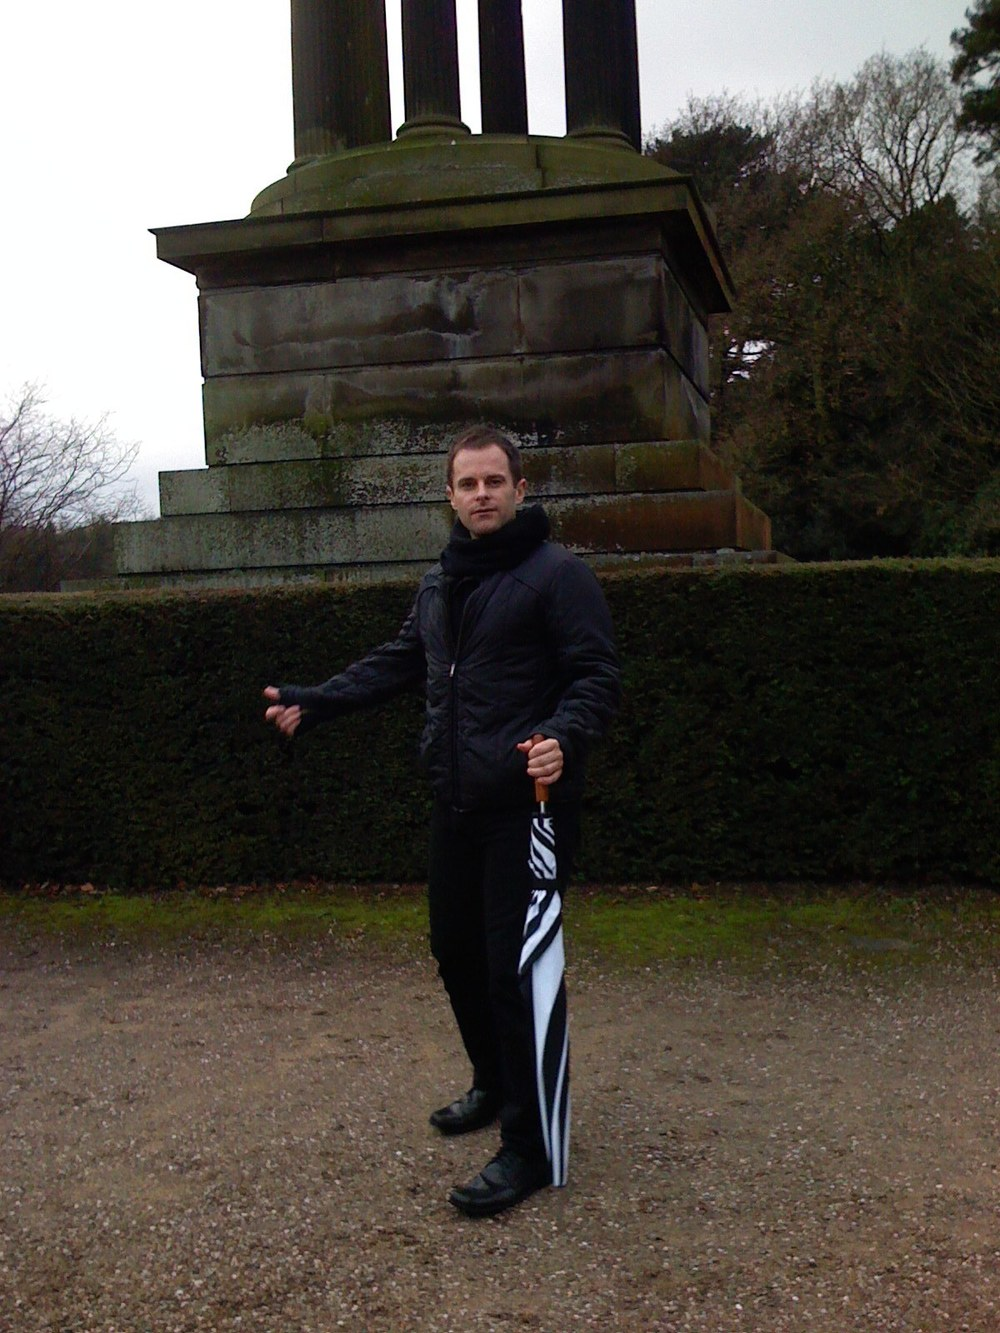 Jesse-Waugh_Tatton-Park.JPG